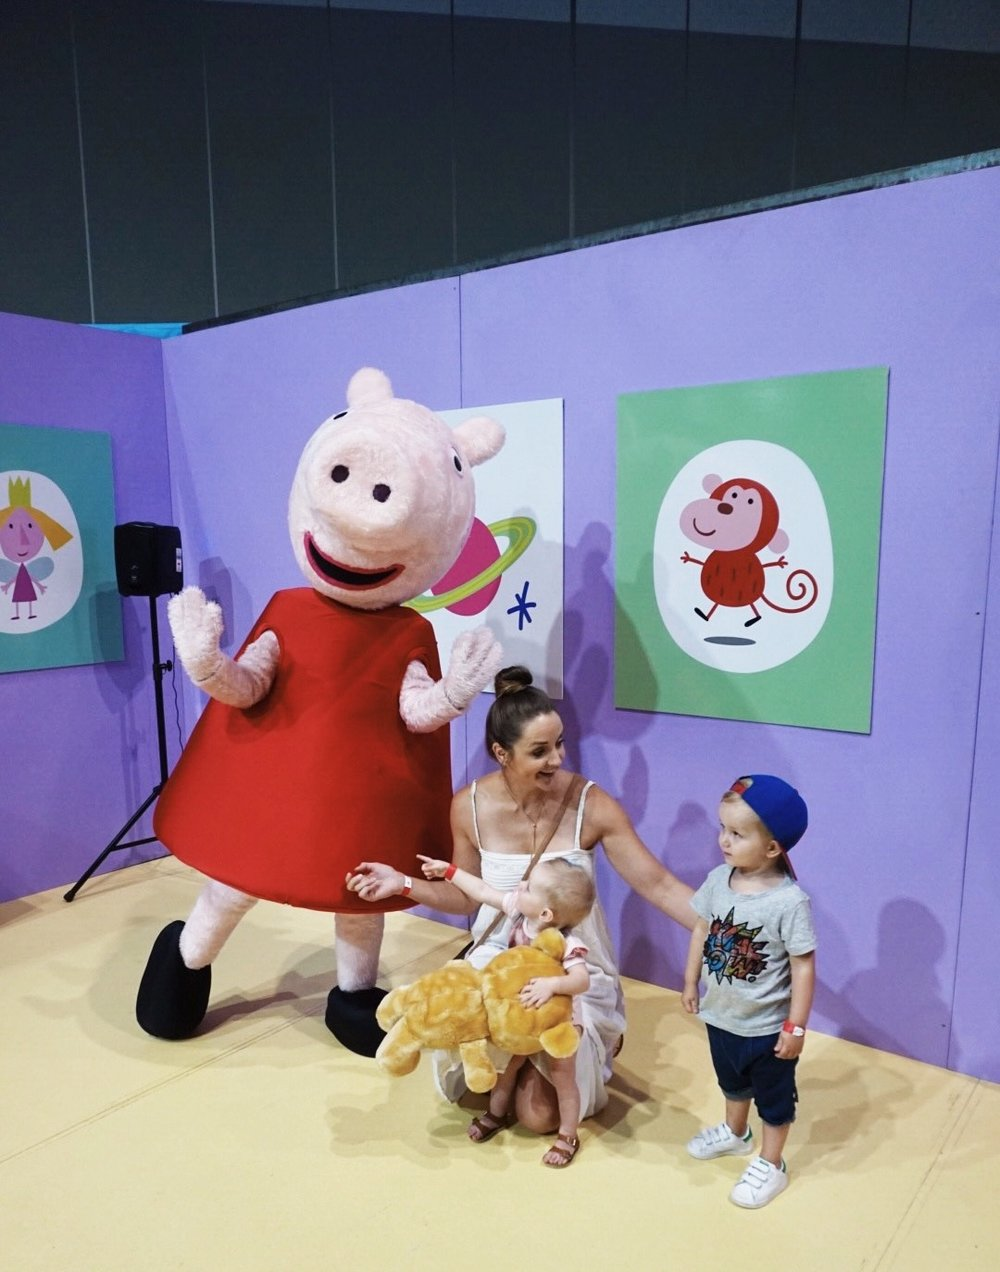 Come here and get a nice pic with Peppa kids...errrr, yeah right mum!